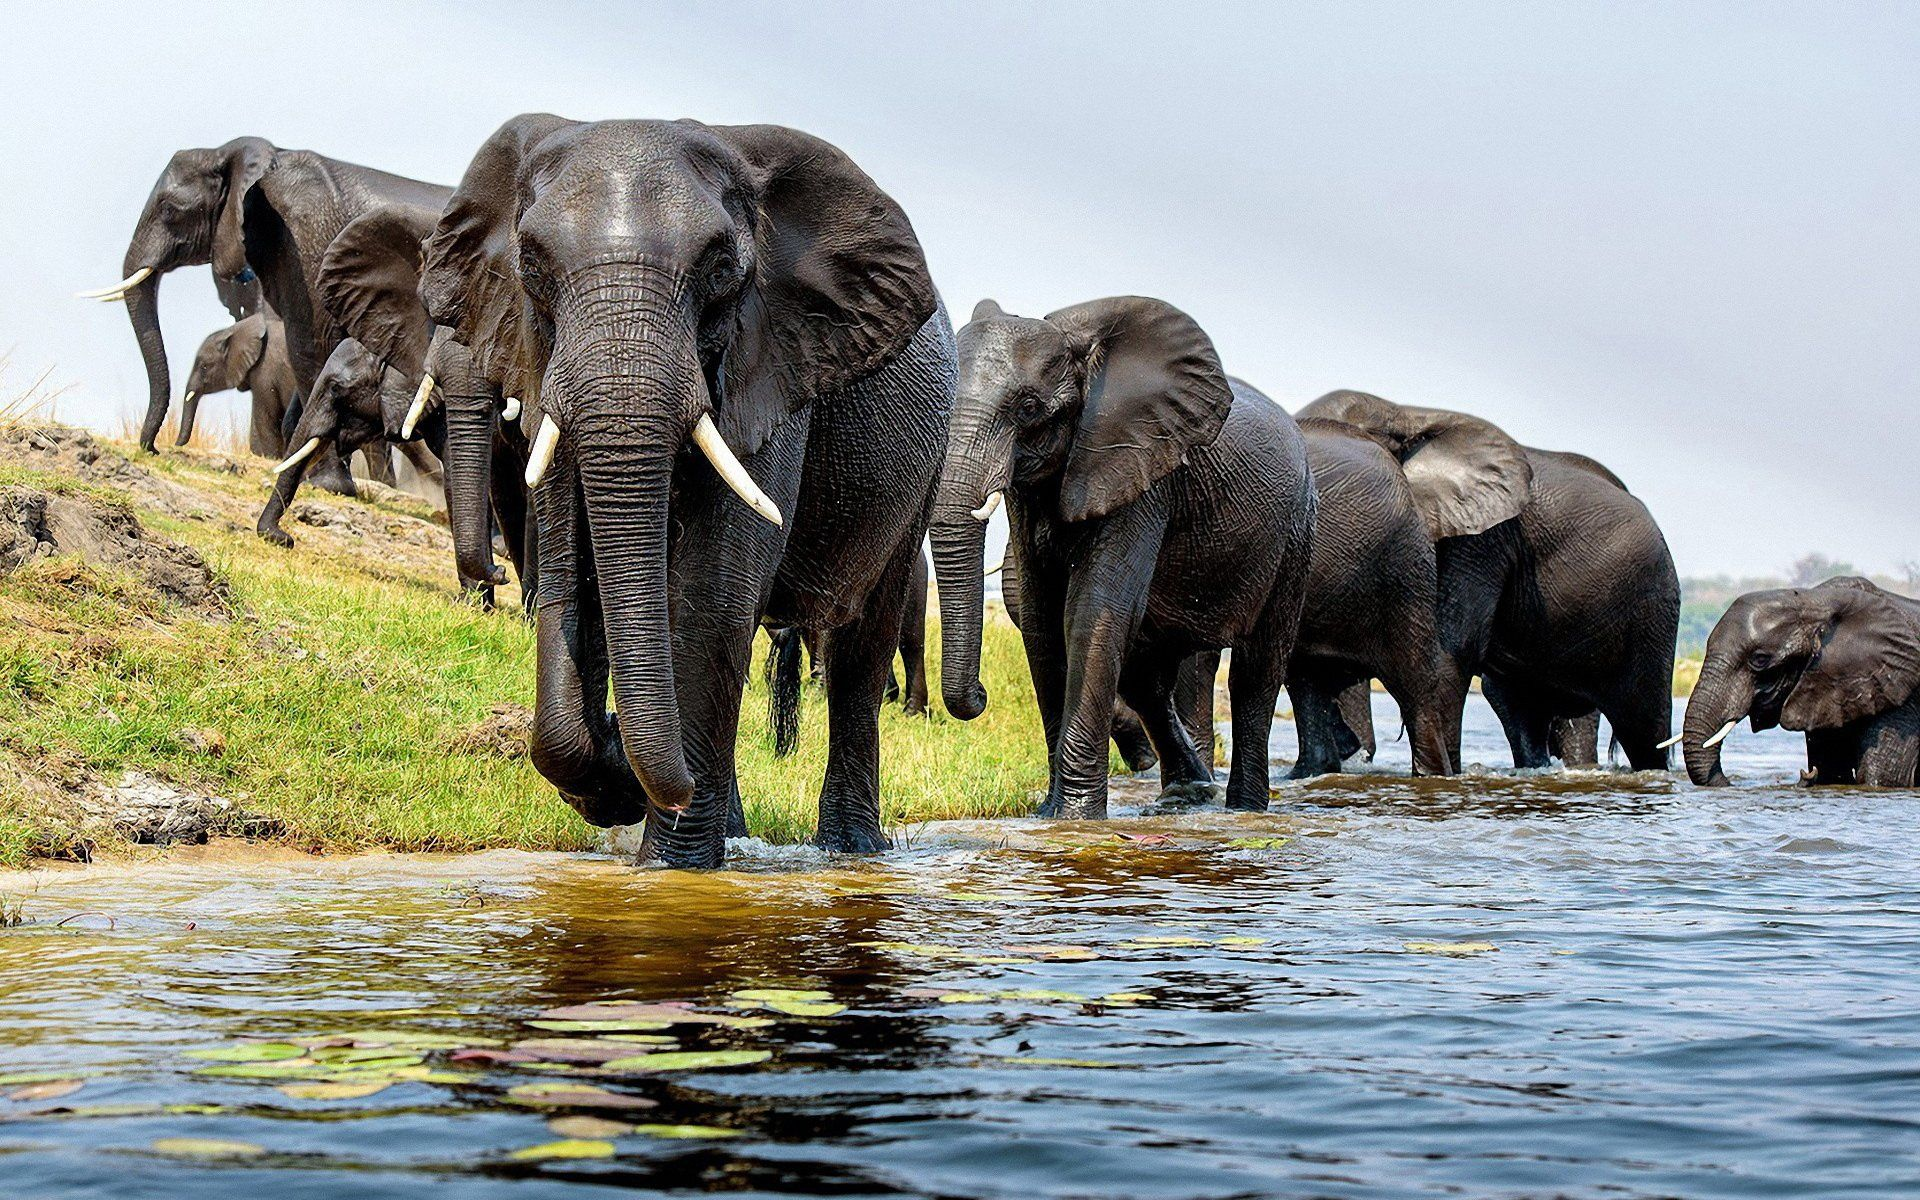 Elephant HD Wallpapers Backgrounds Wallpaper | Wallpaper | Pinterest | Hd wallpaper, Elephant ...